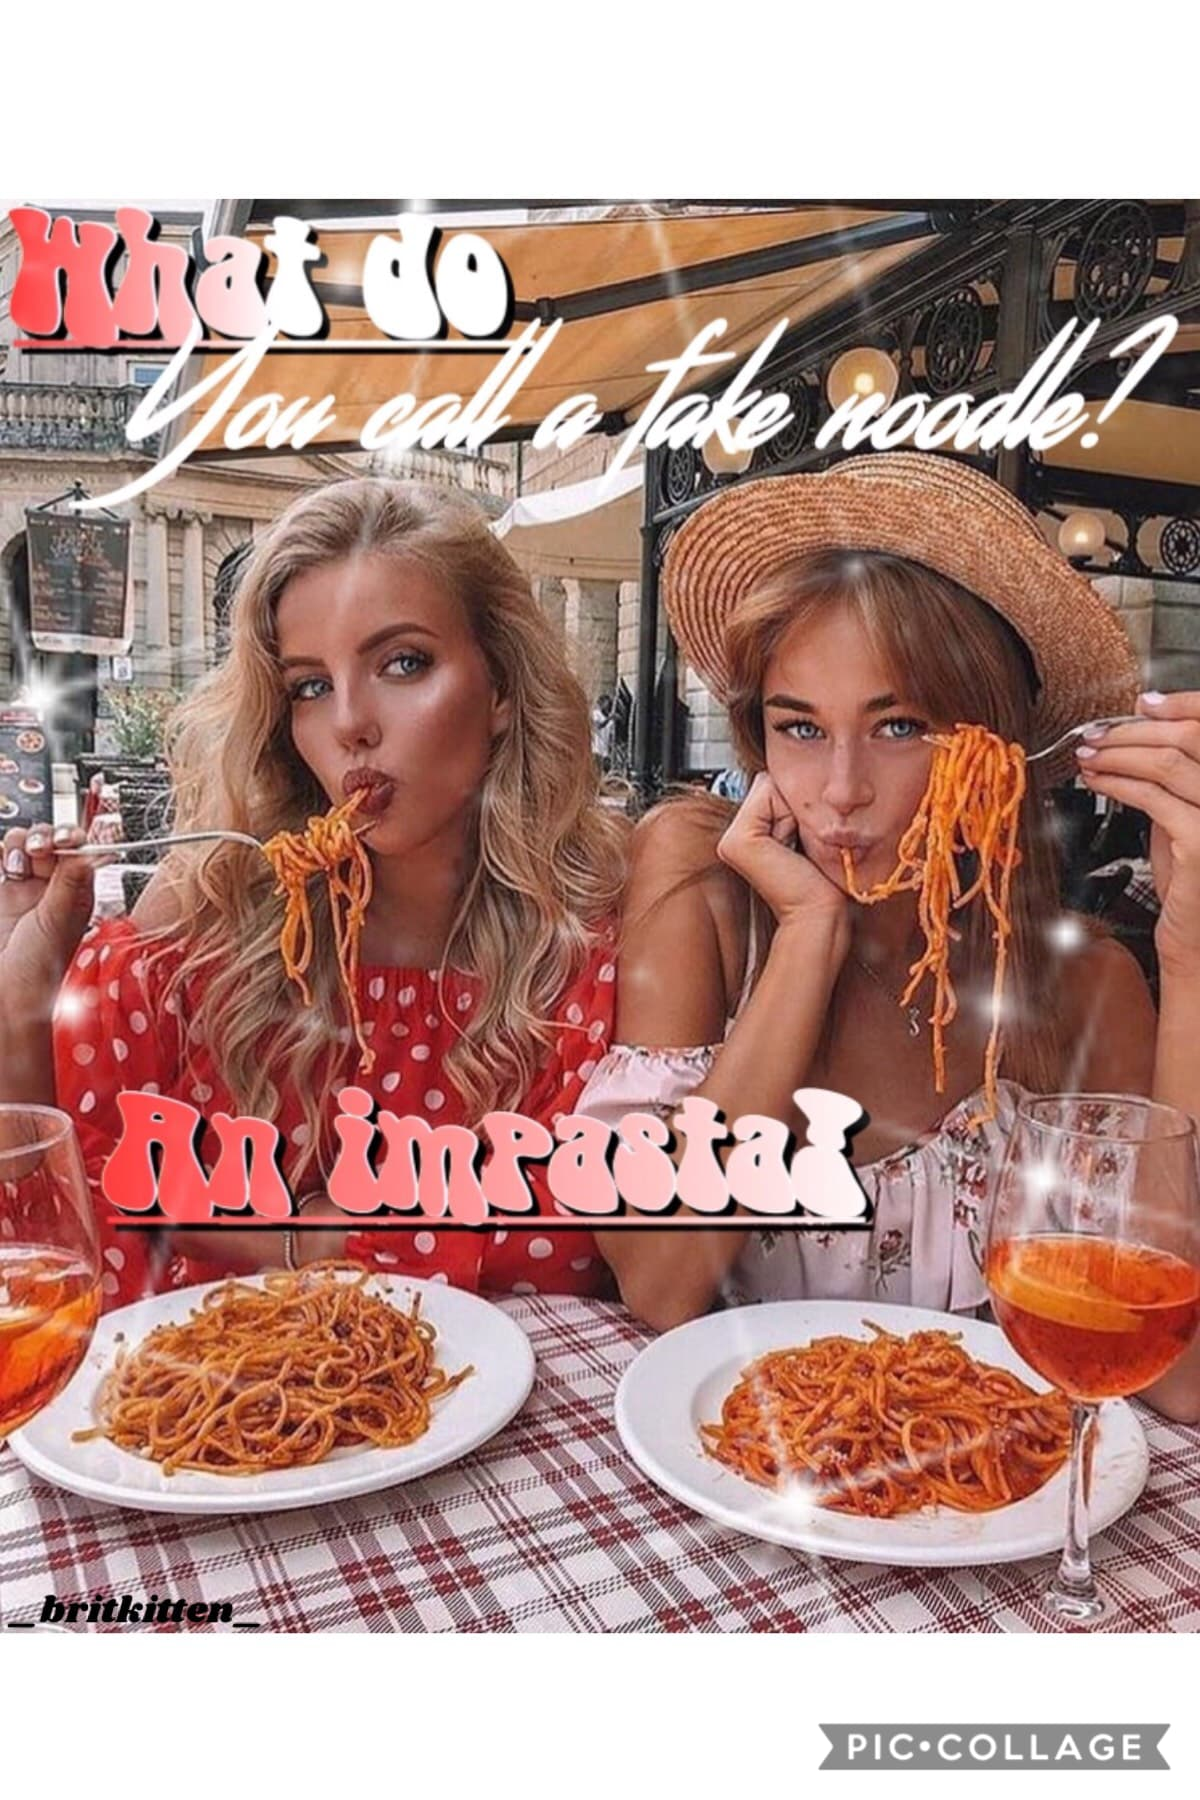 Entry to piccollage's contest for best dad jokes! I LOVE THIS ONE 😂 QOTD- do u like spaghetti? AOTD- yes!! 🍝 is my favorite!